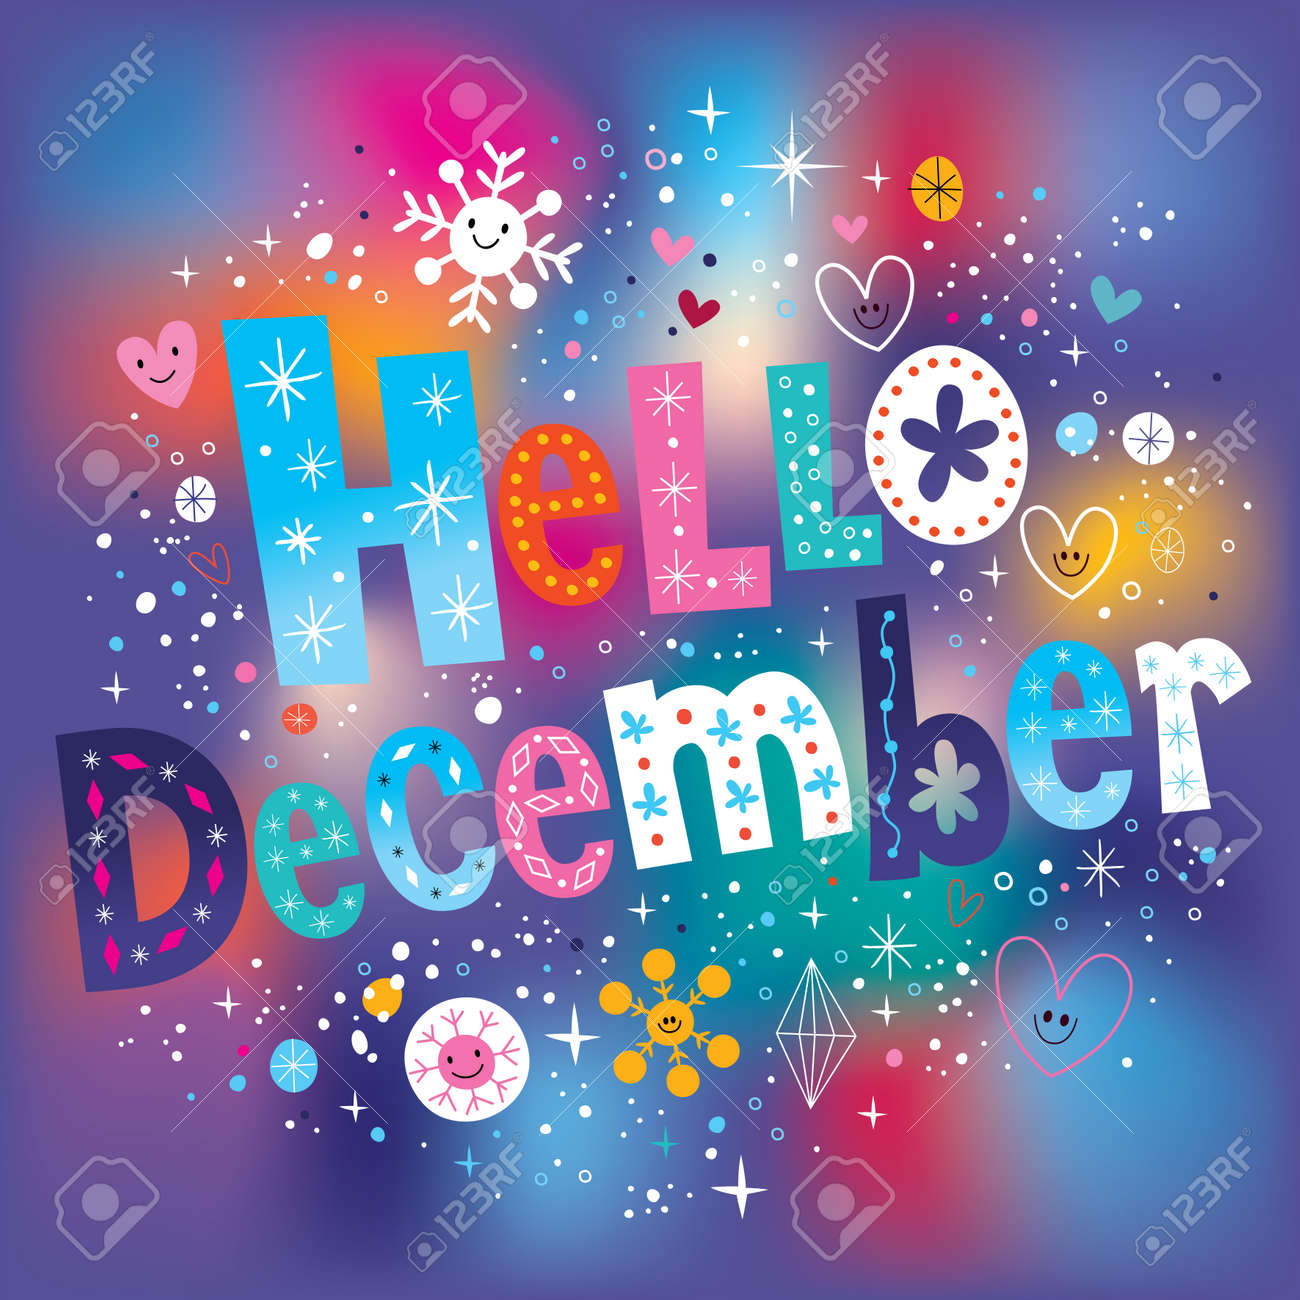 December Hello pictures pictures